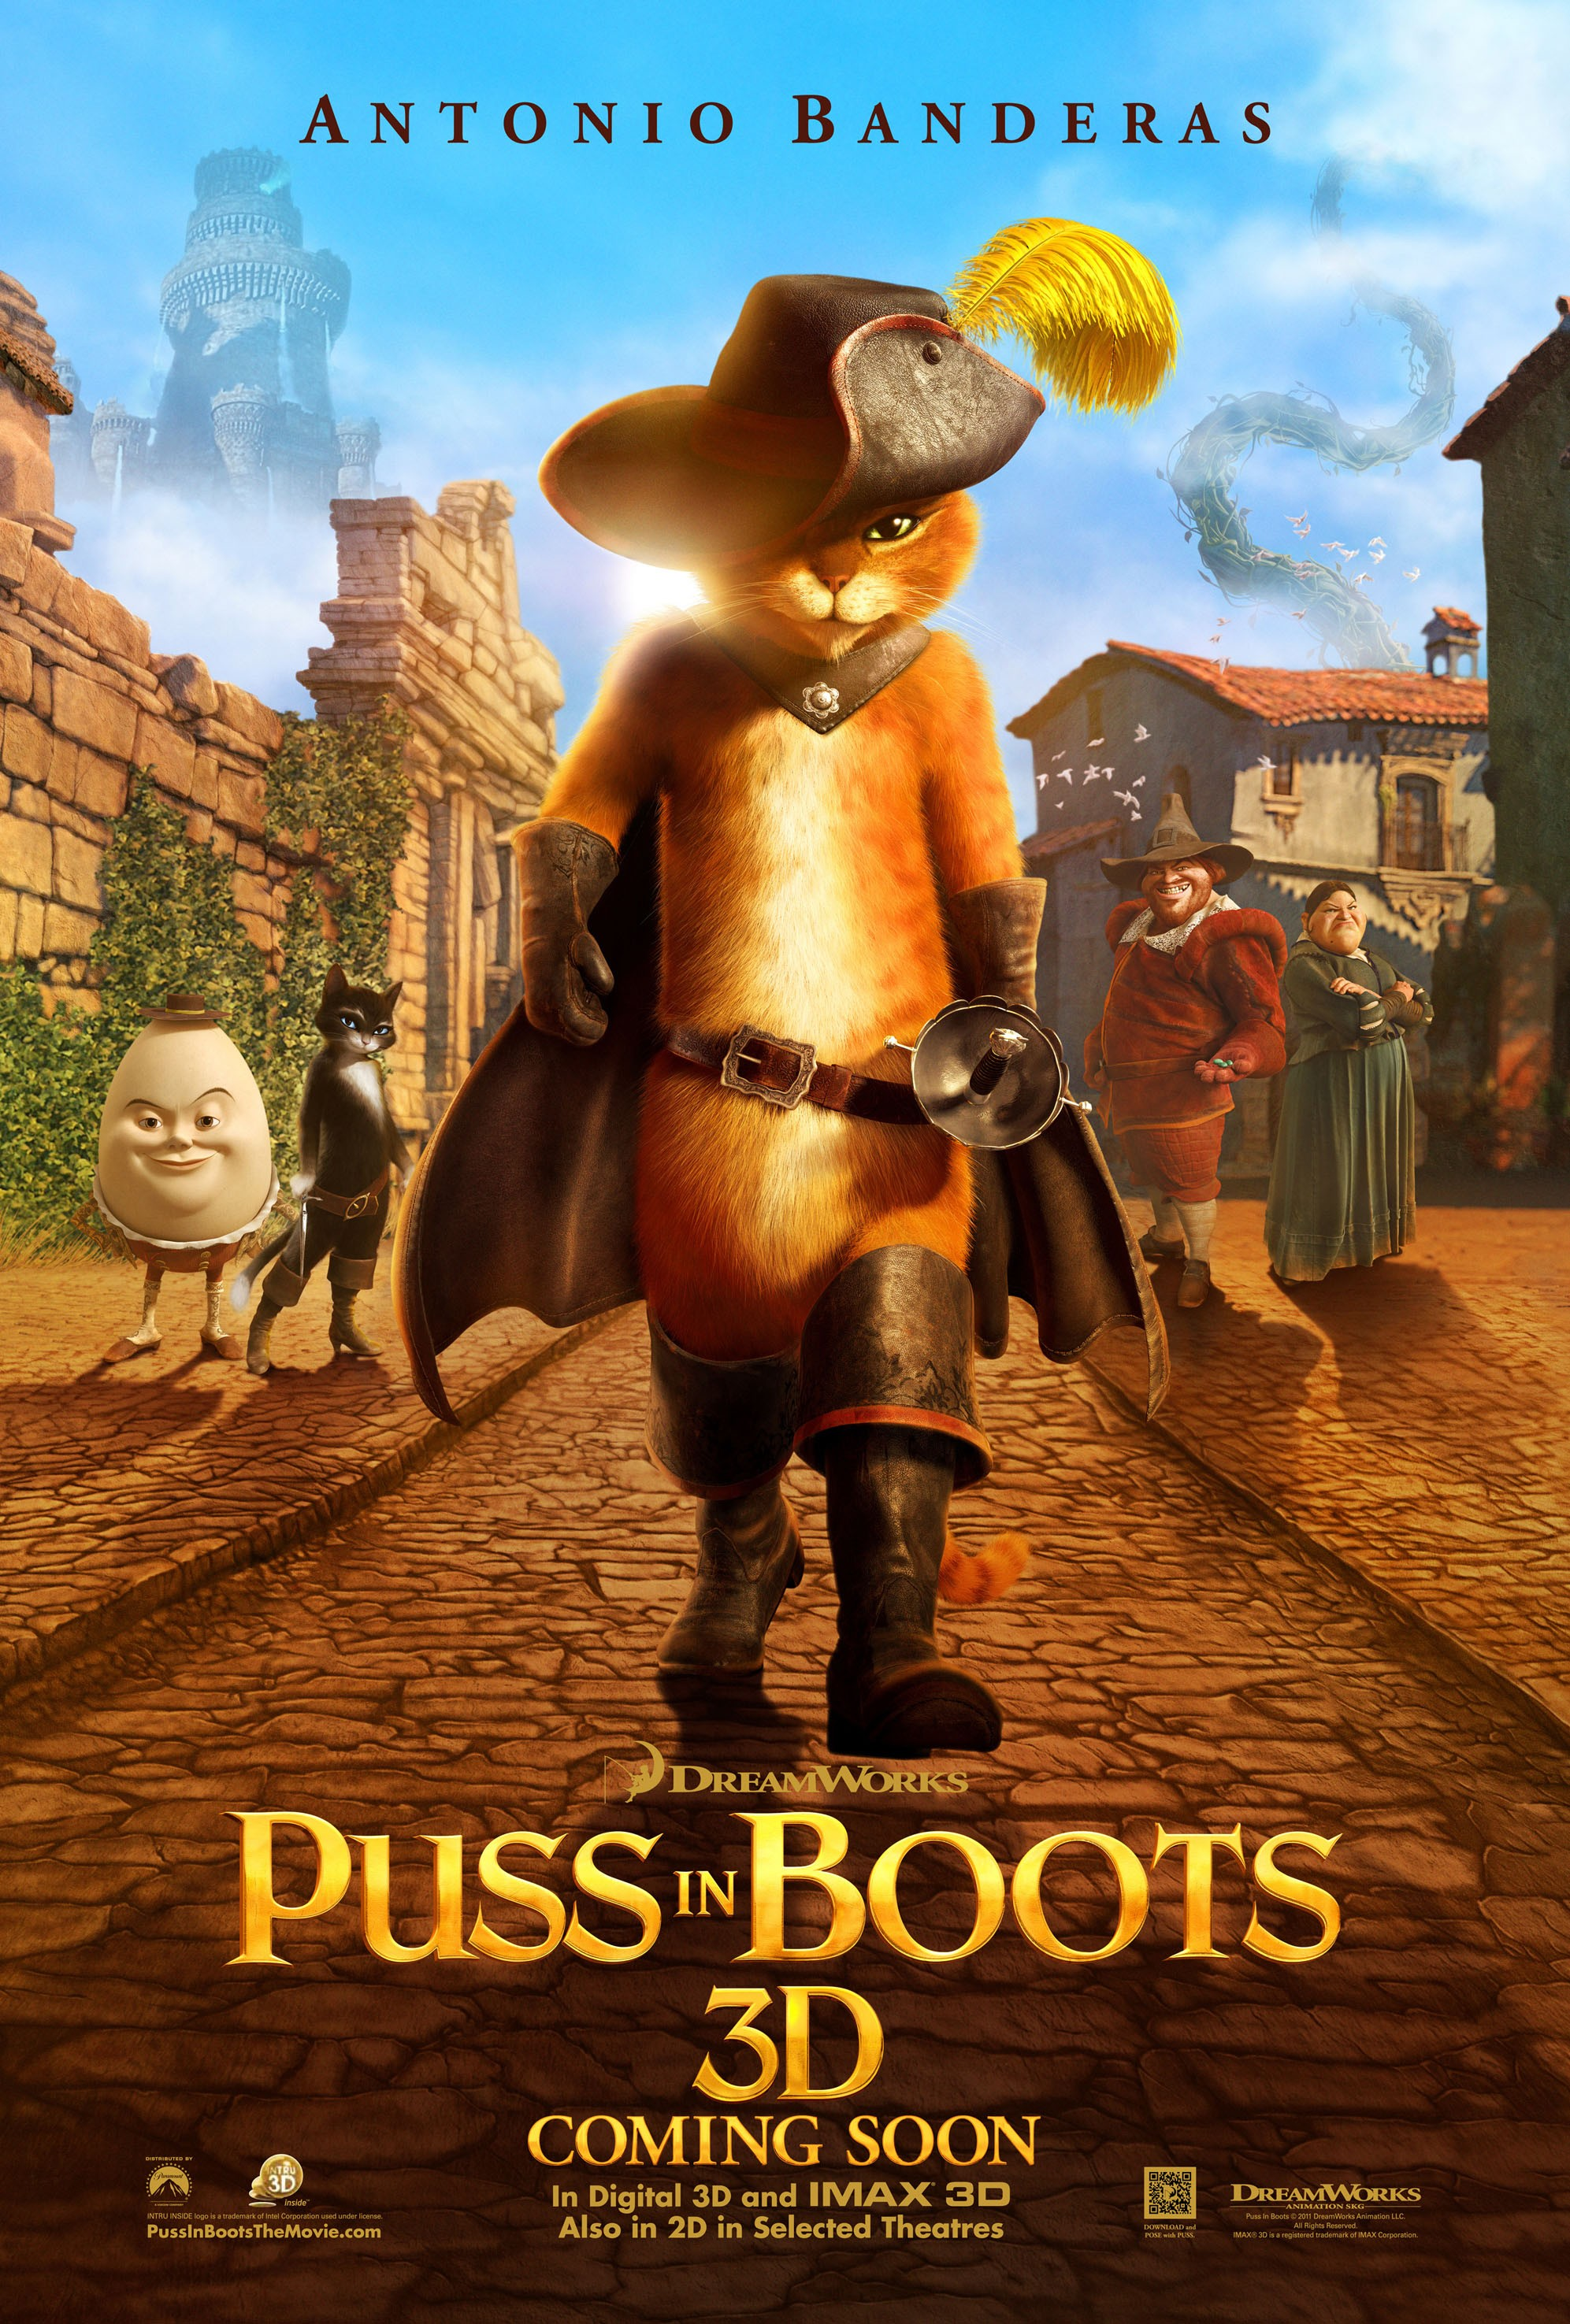 puss in boots (film) | wikishrek | fandom poweredwikia